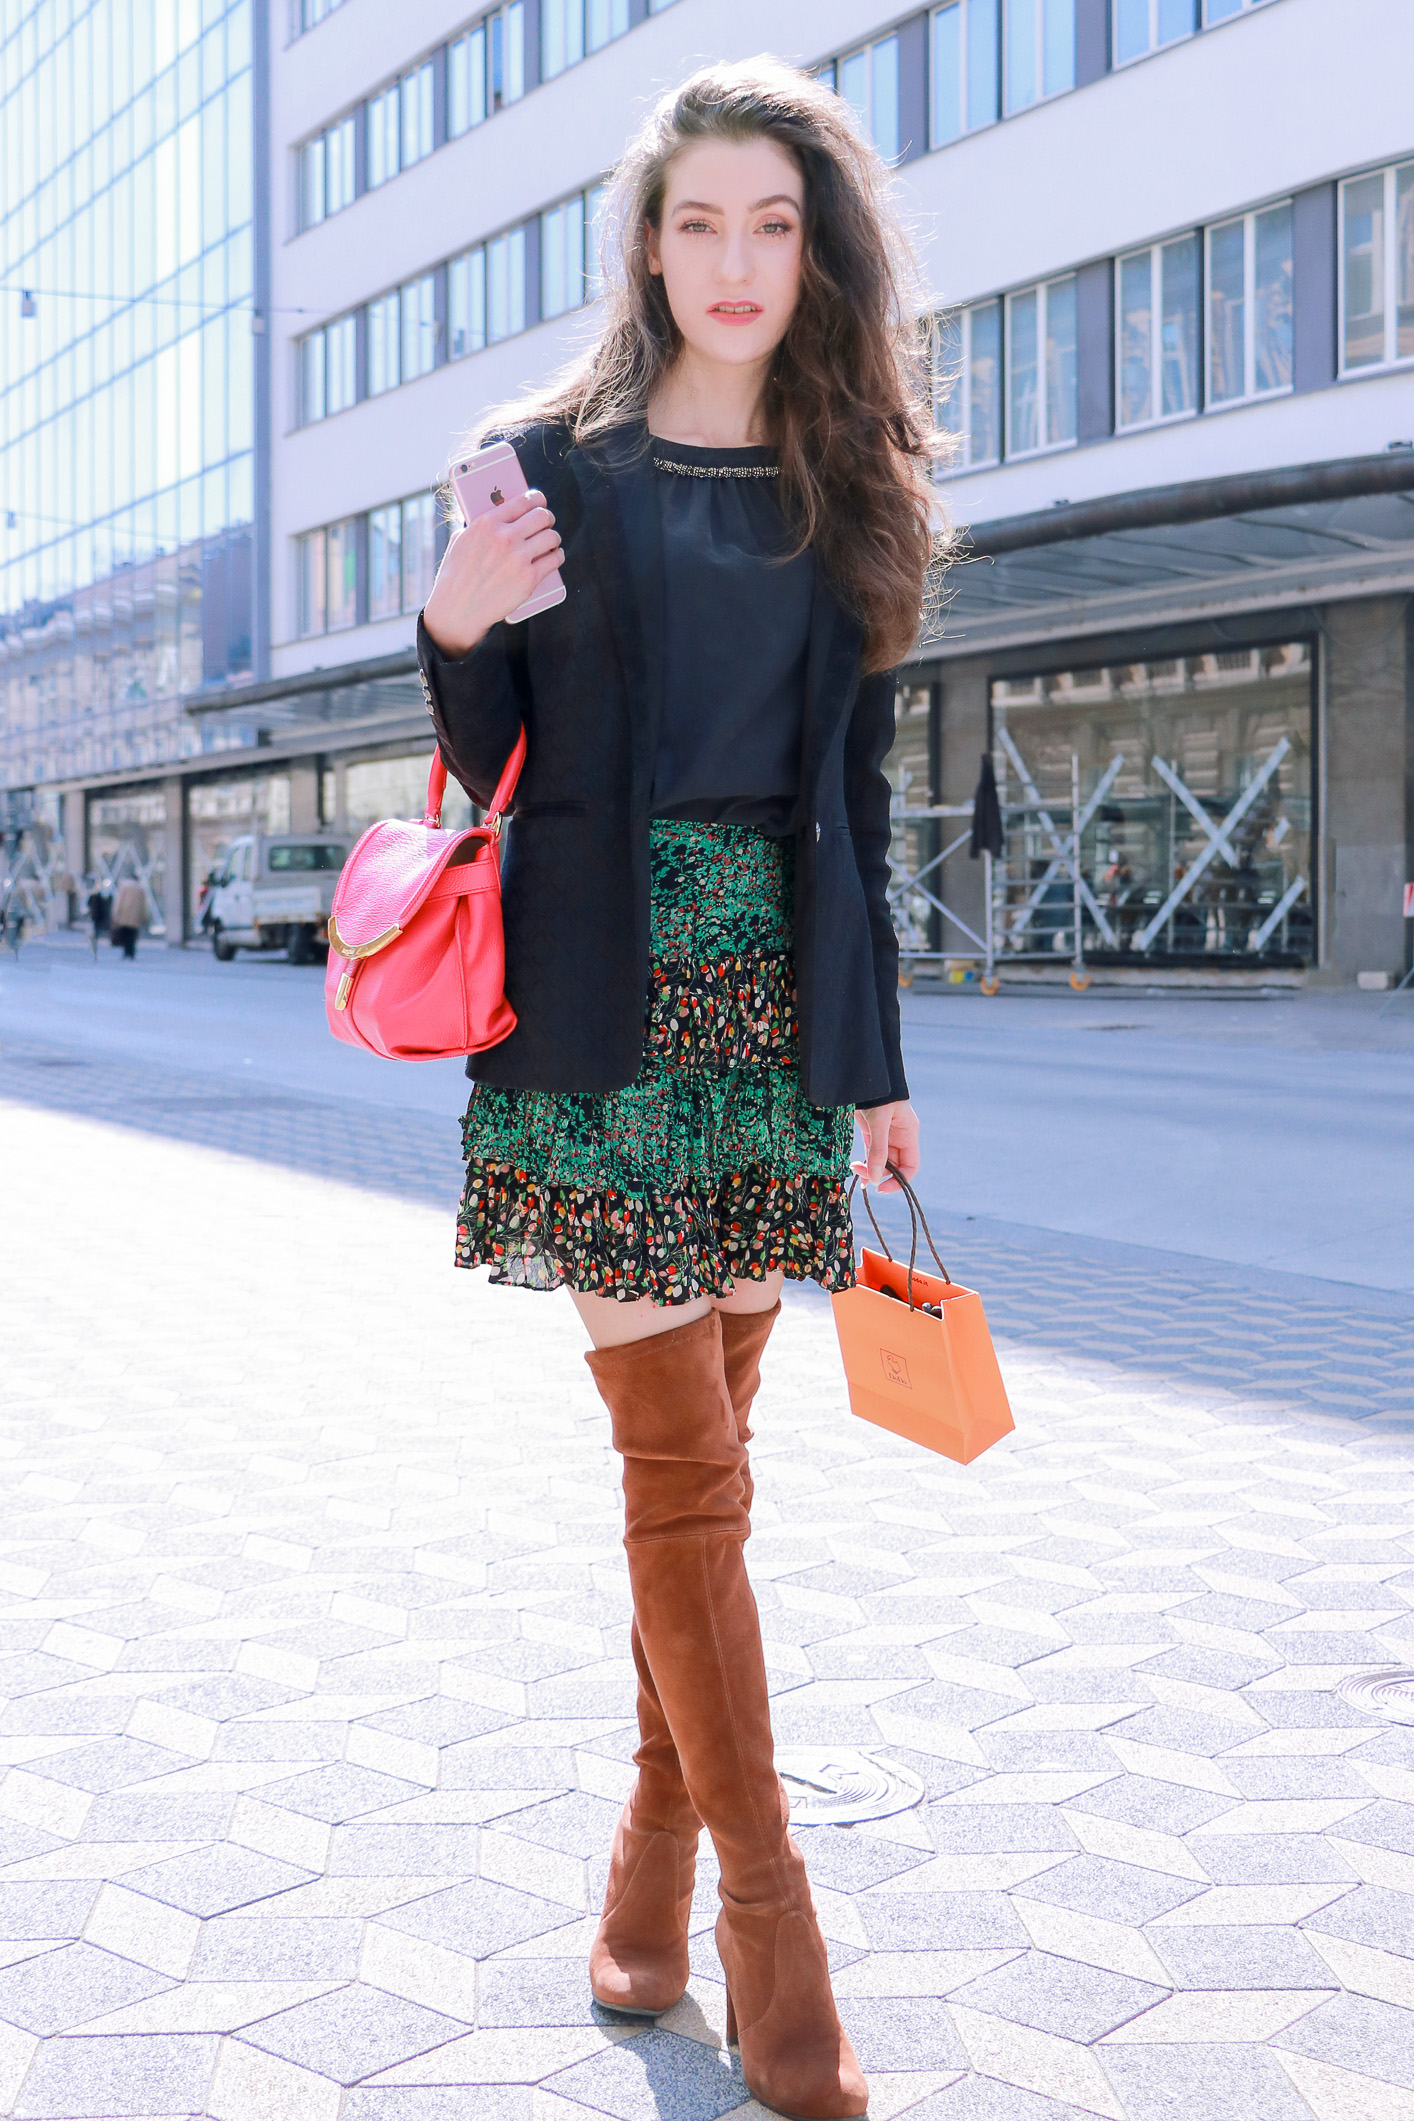 Fashion blogger Veronika Lipar of Brunette From Wall Street sharing how to style OTK boots and chic boho skirt in spring